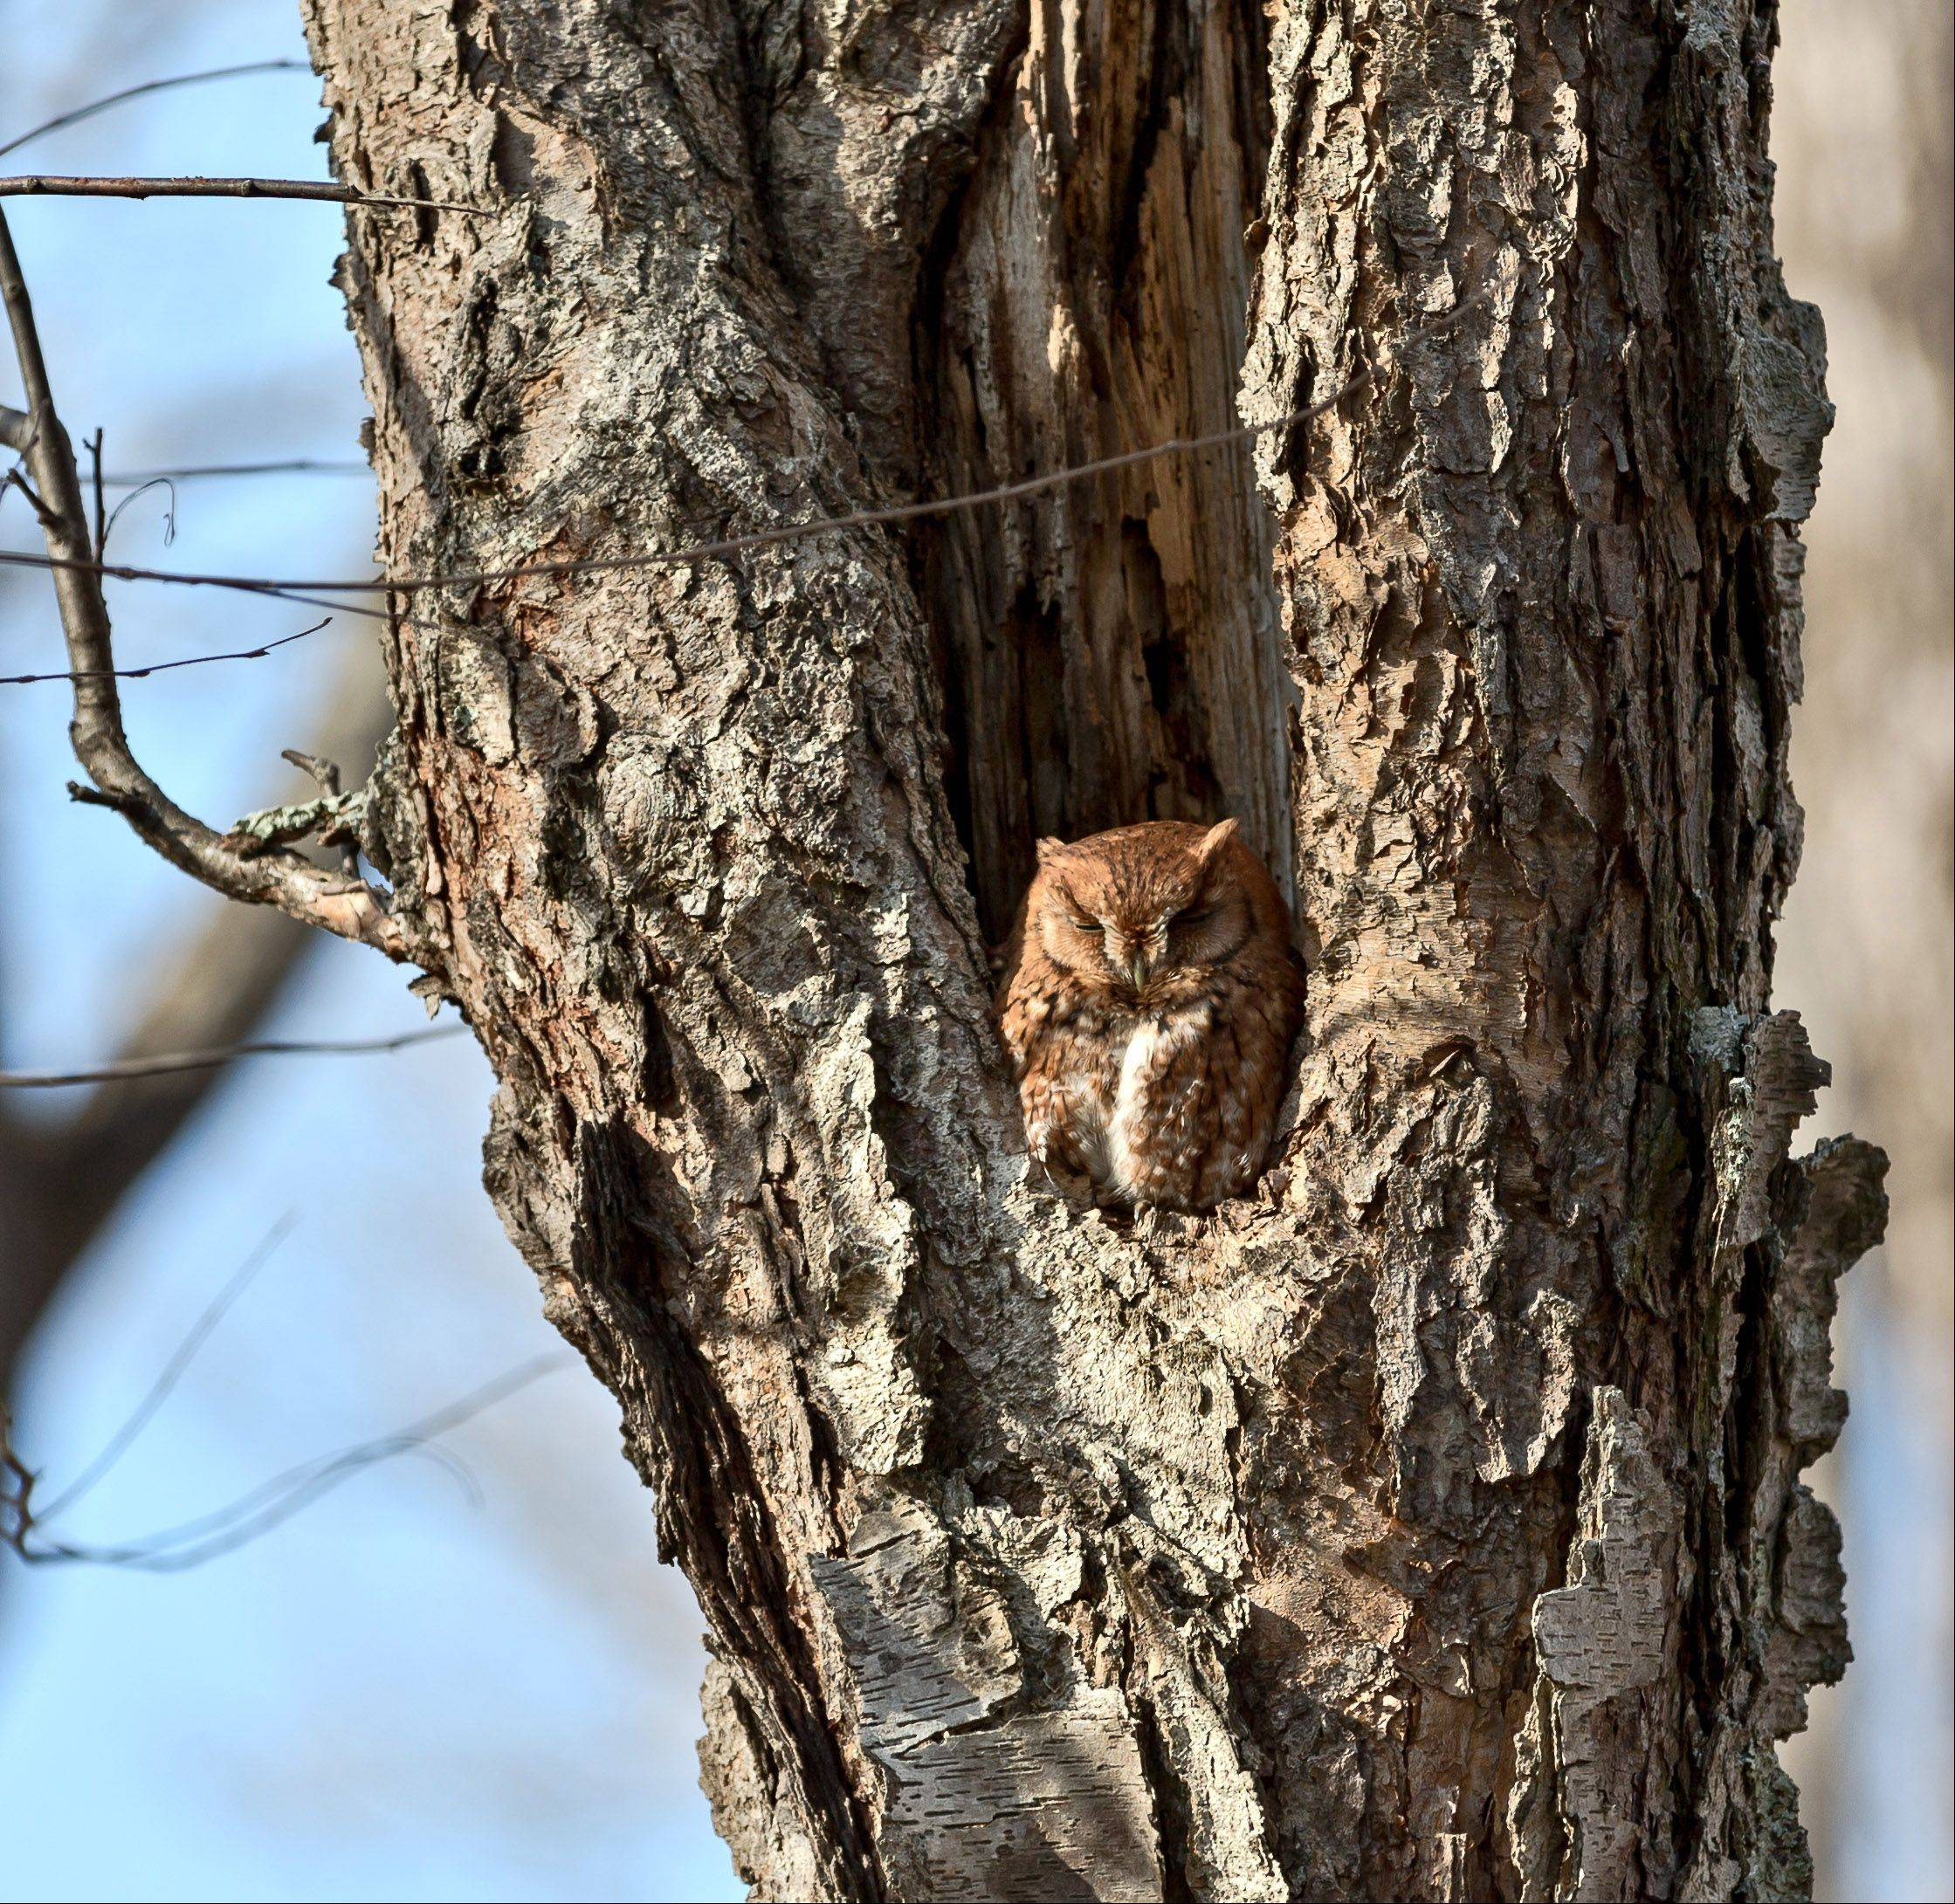 A Screech Owl sleeps in the fork of a tree in Biltmore Estate in Asheville, North Caroline last week.